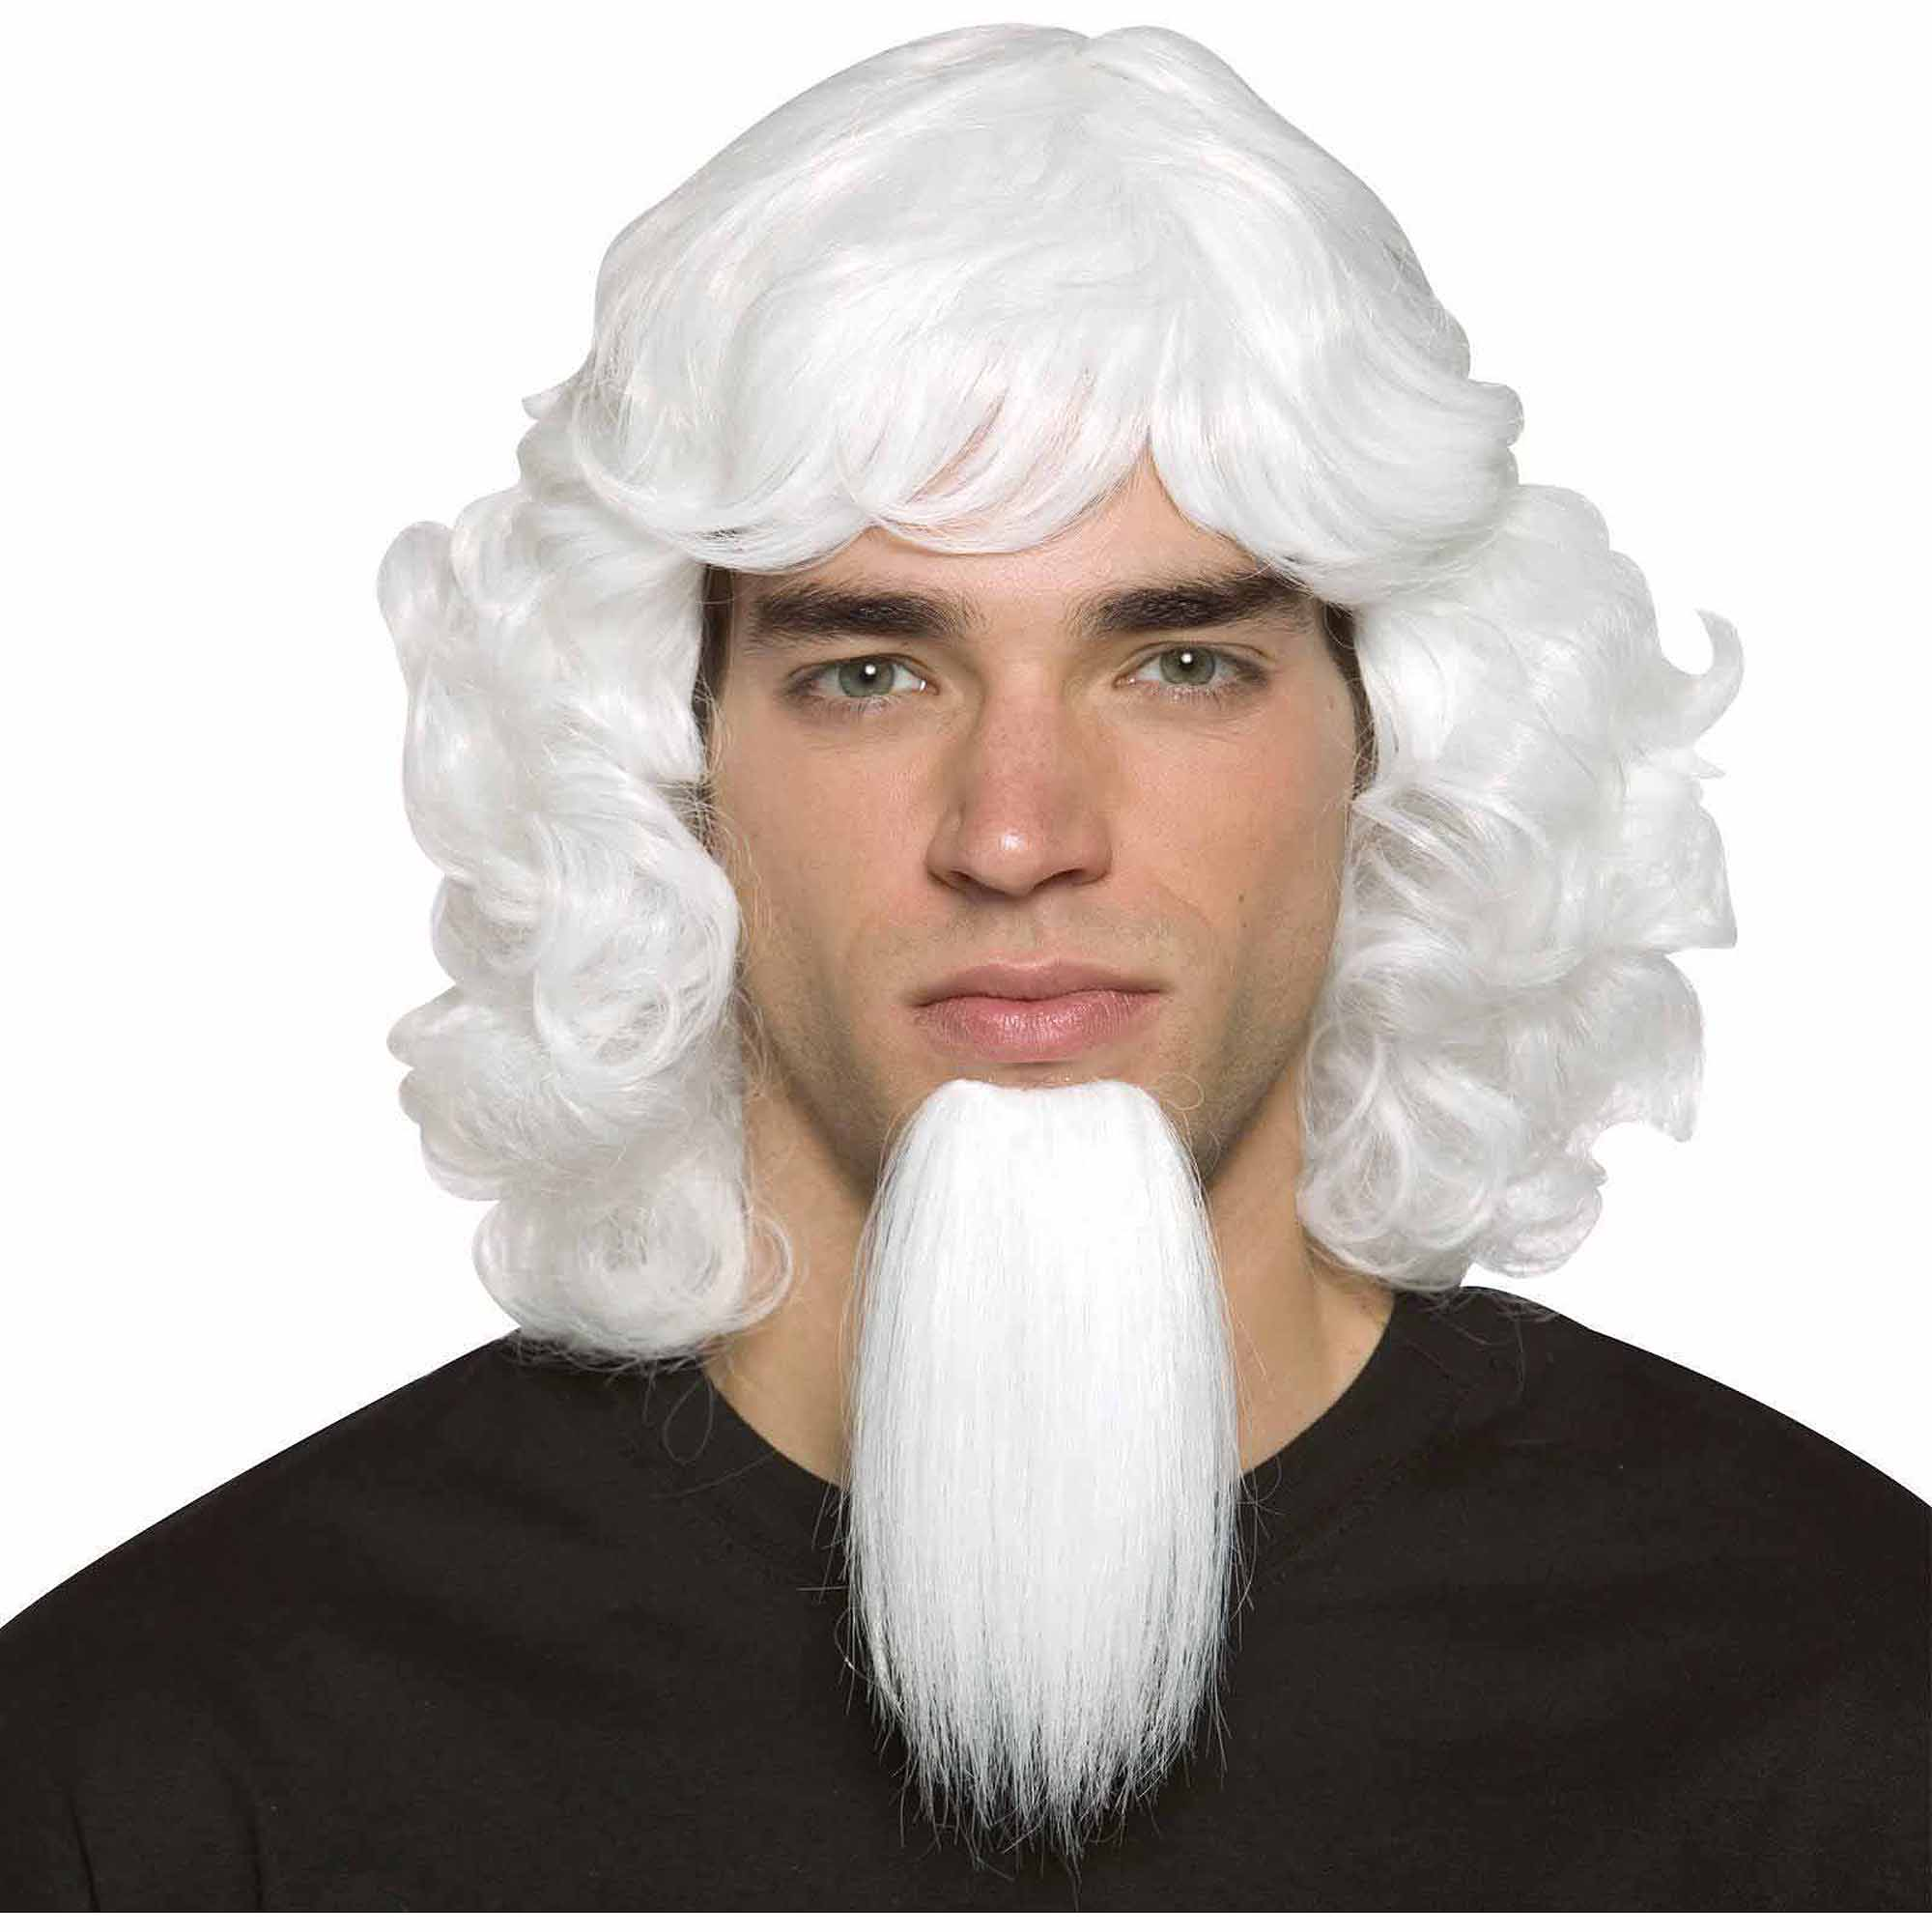 Uncle Sam Wig with Goatee Adult Halloween Accessory